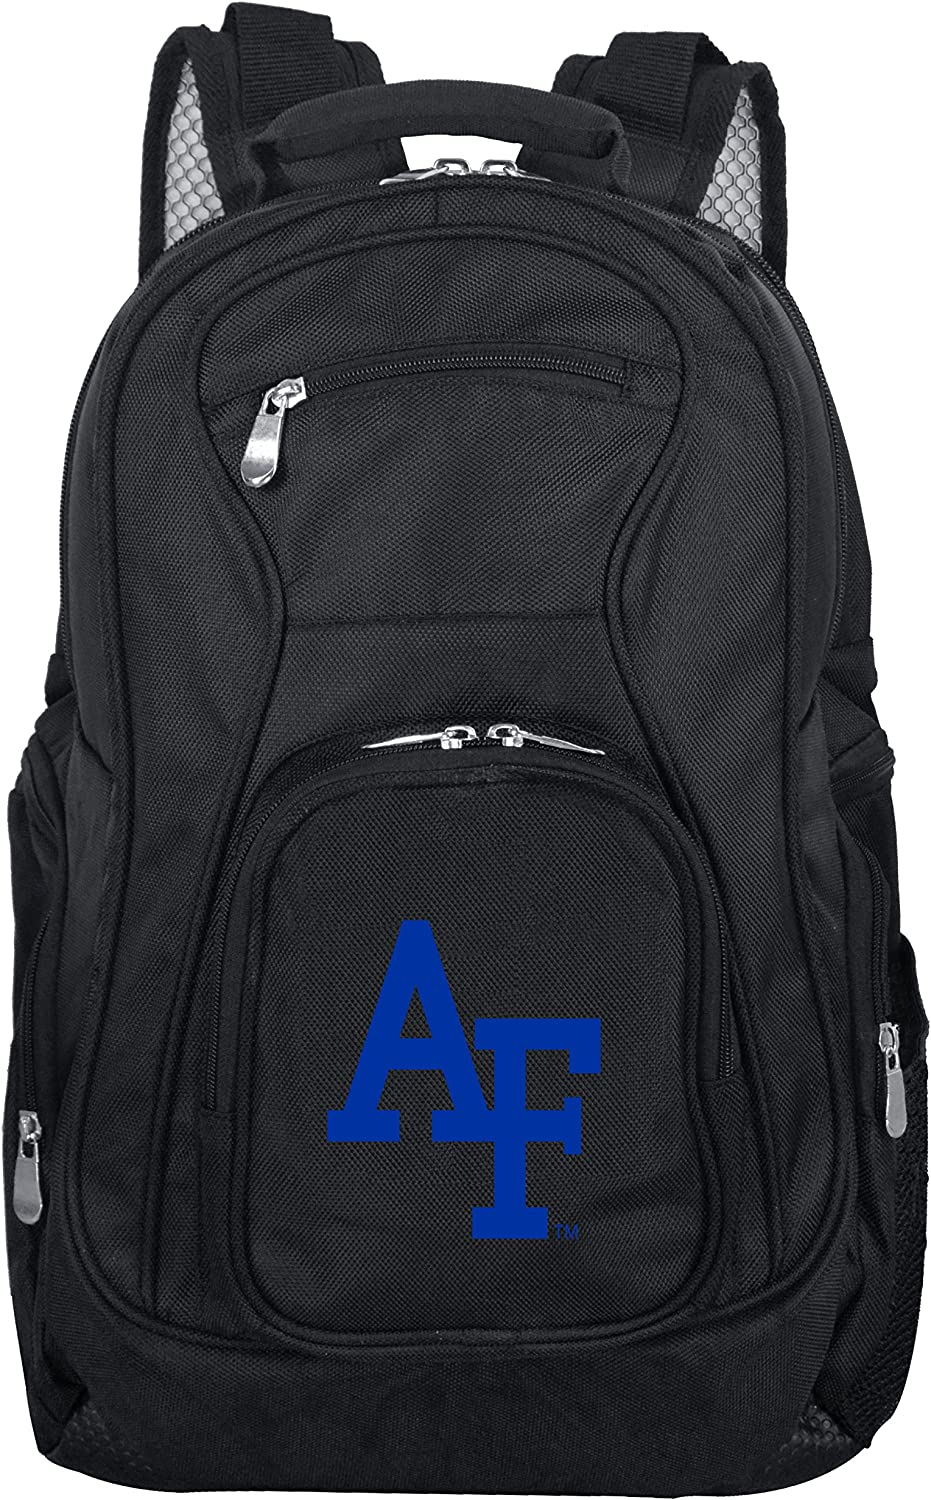 19-inches NCAA Laptop Backpack Black